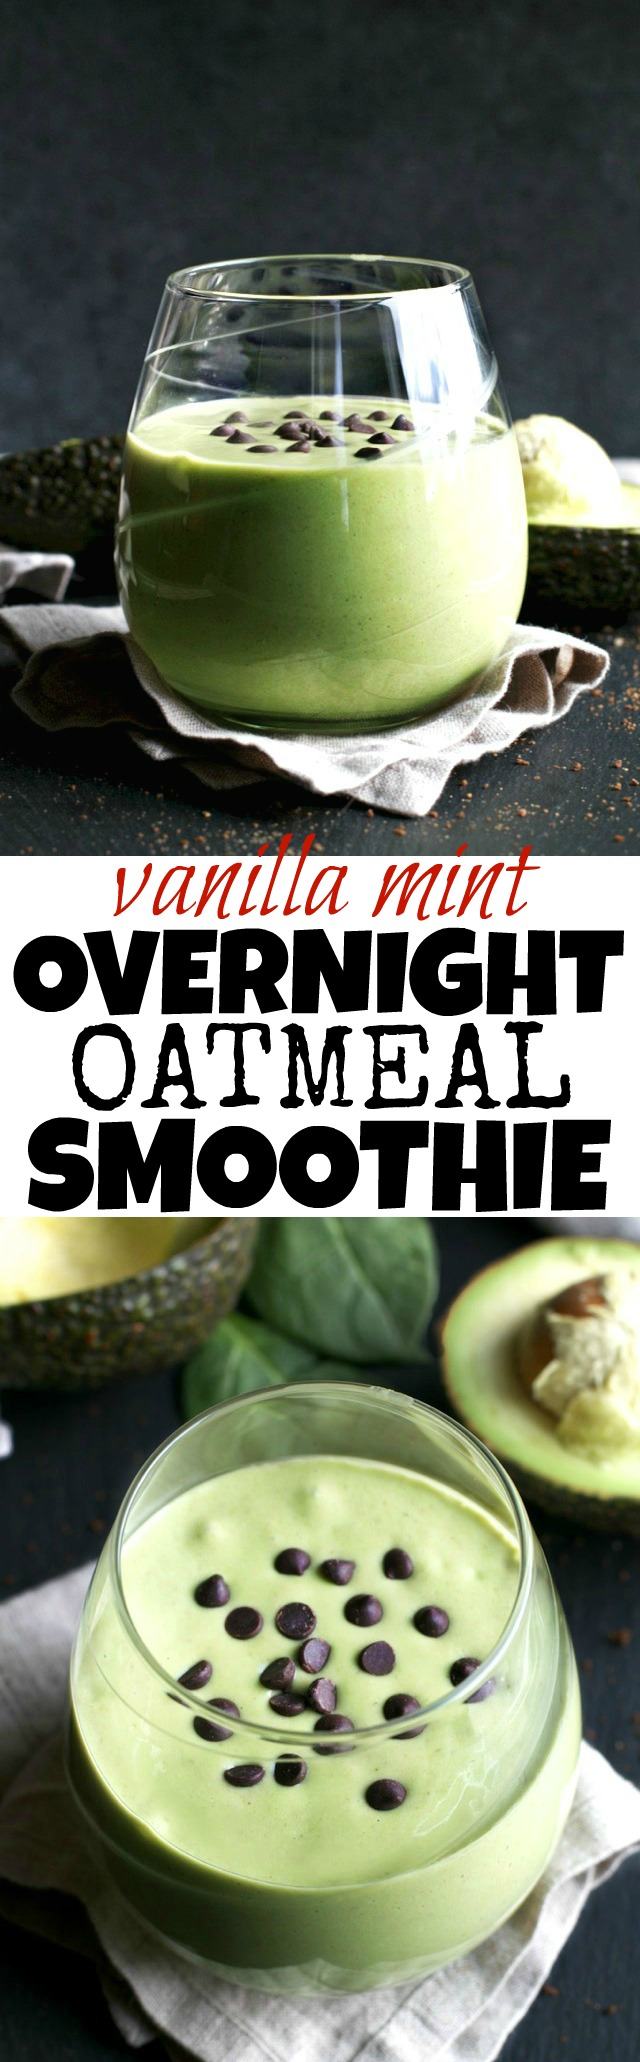 Getting those greens in is super easy with this deliciously creamy Vanilla Mint Overnight Oatmeal Smoothie! | runningwithspoons.com #vegan #glutenfree #healthy #recipe